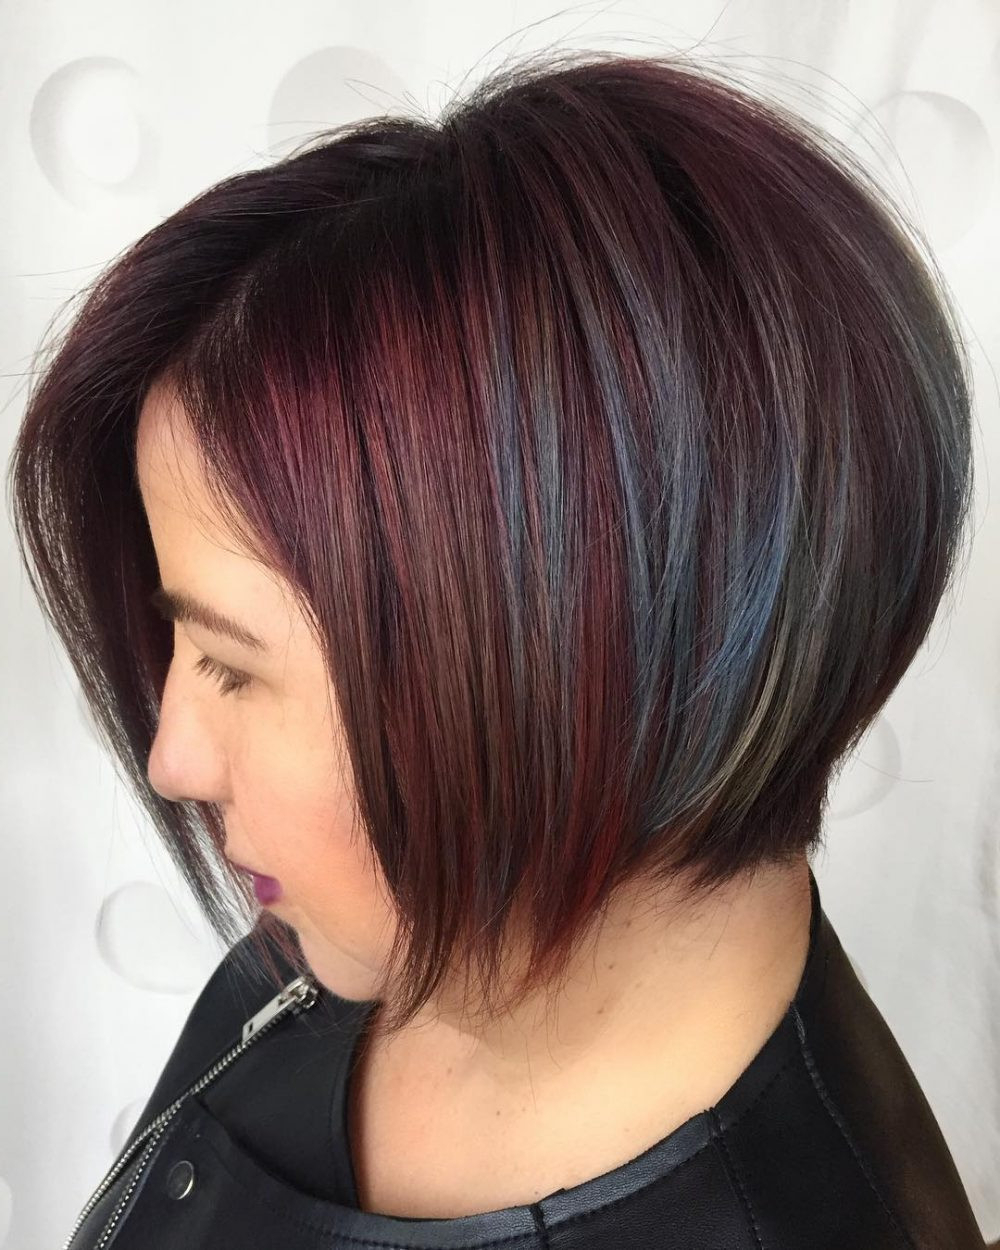 21+ Classy Short Haircuts & Hairstyles For Thick Hair – Sensod Throughout Short And Classy Haircuts For Thick Hair (View 2 of 20)